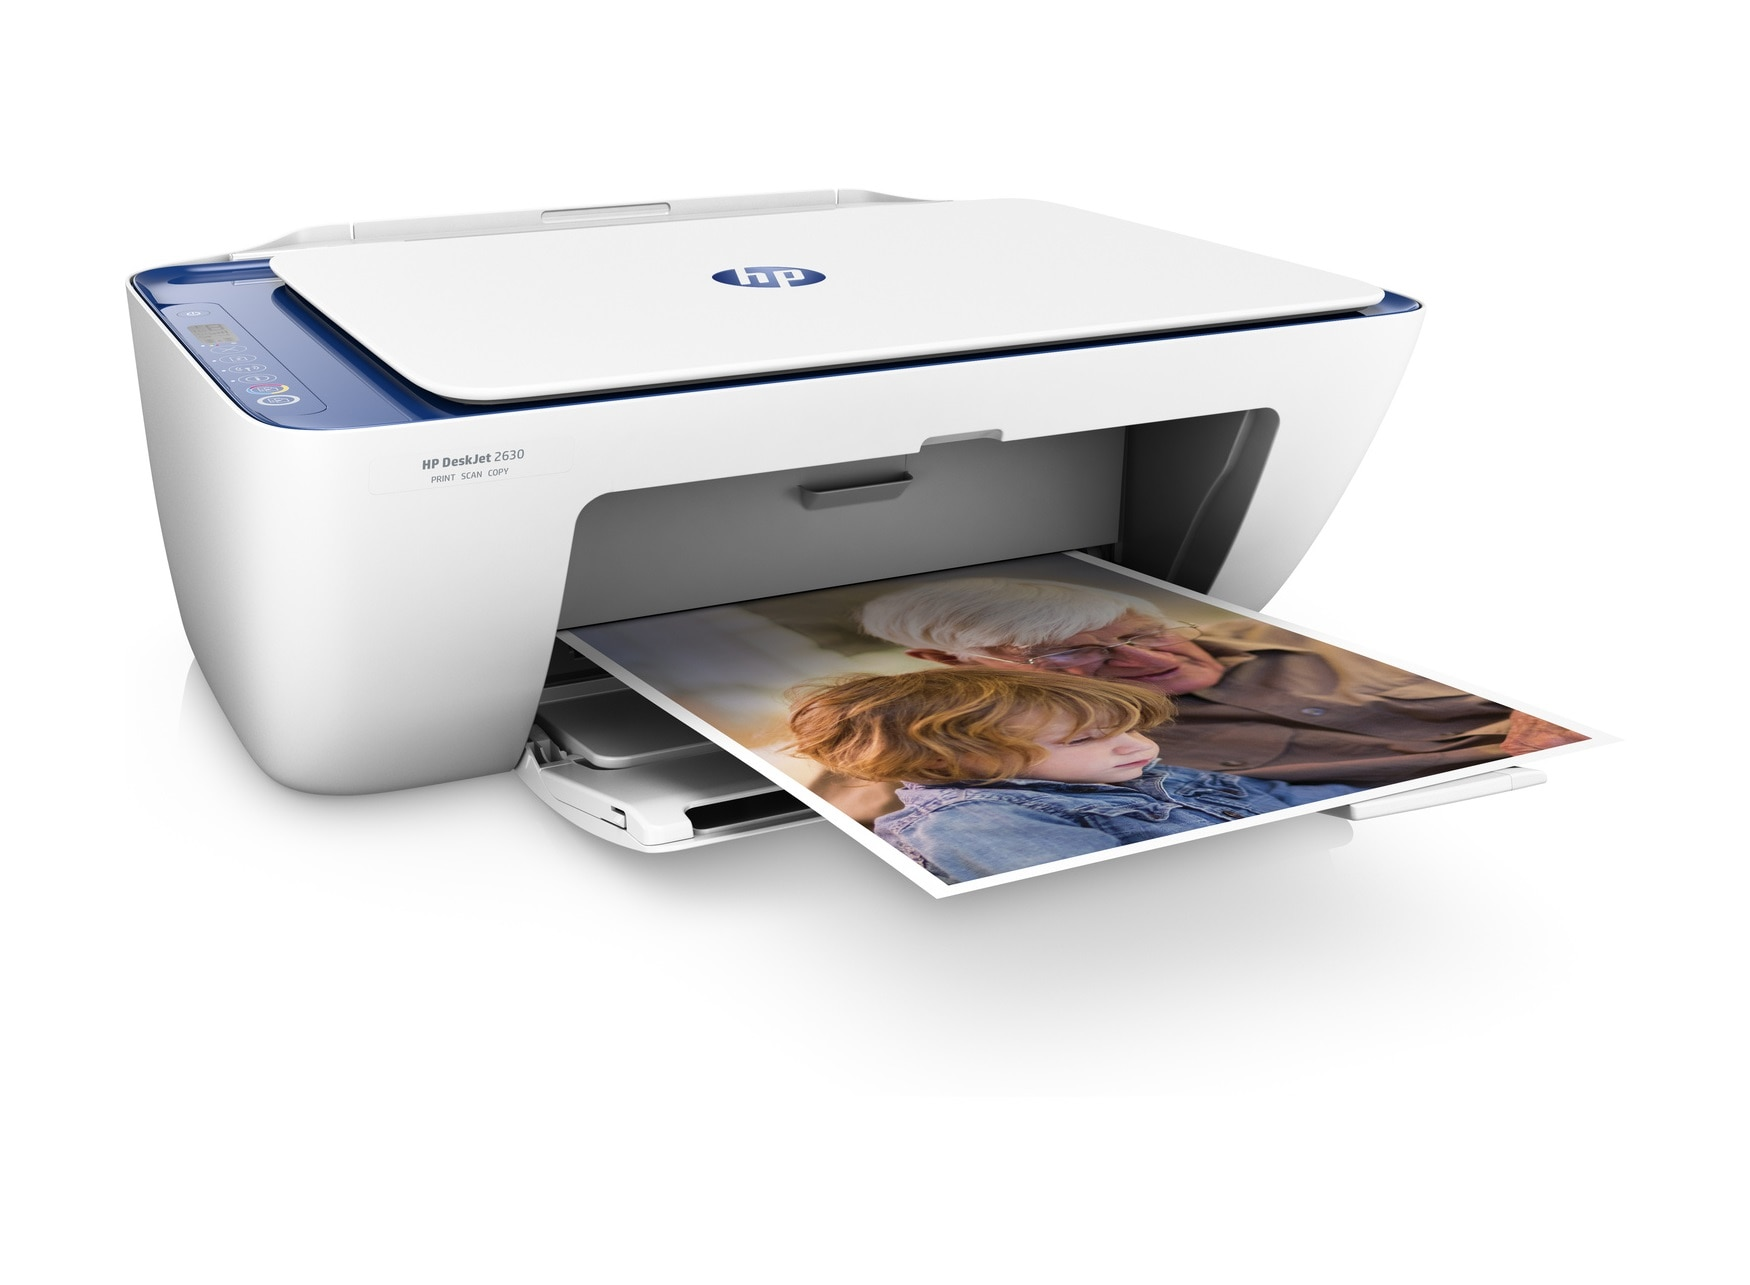 HP DeskJet 2630 Wireless AllinOne Printer  HP Store UK